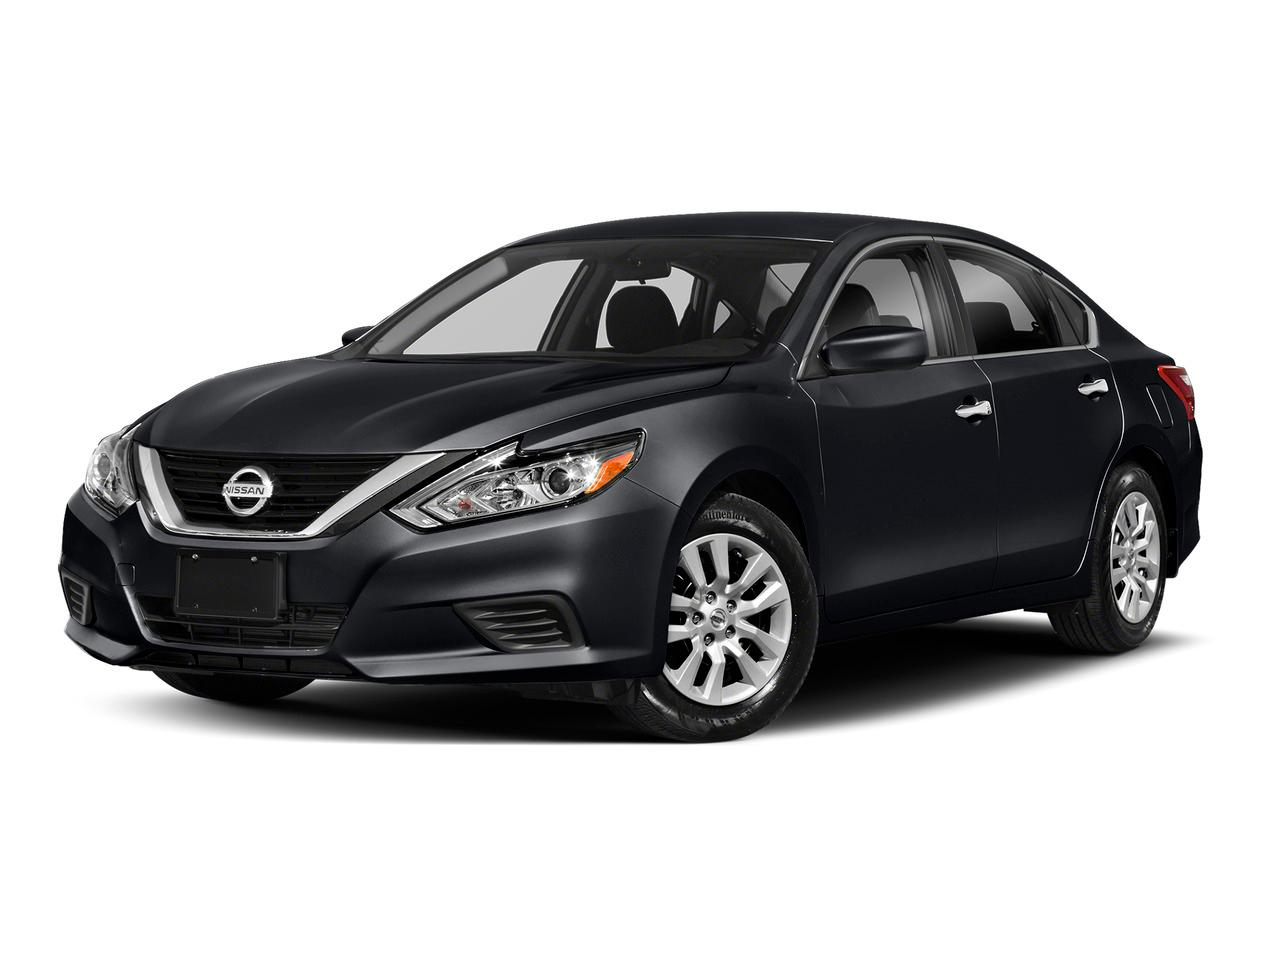 2018 Nissan Altima Vehicle Photo in Jenkintown, PA 19046